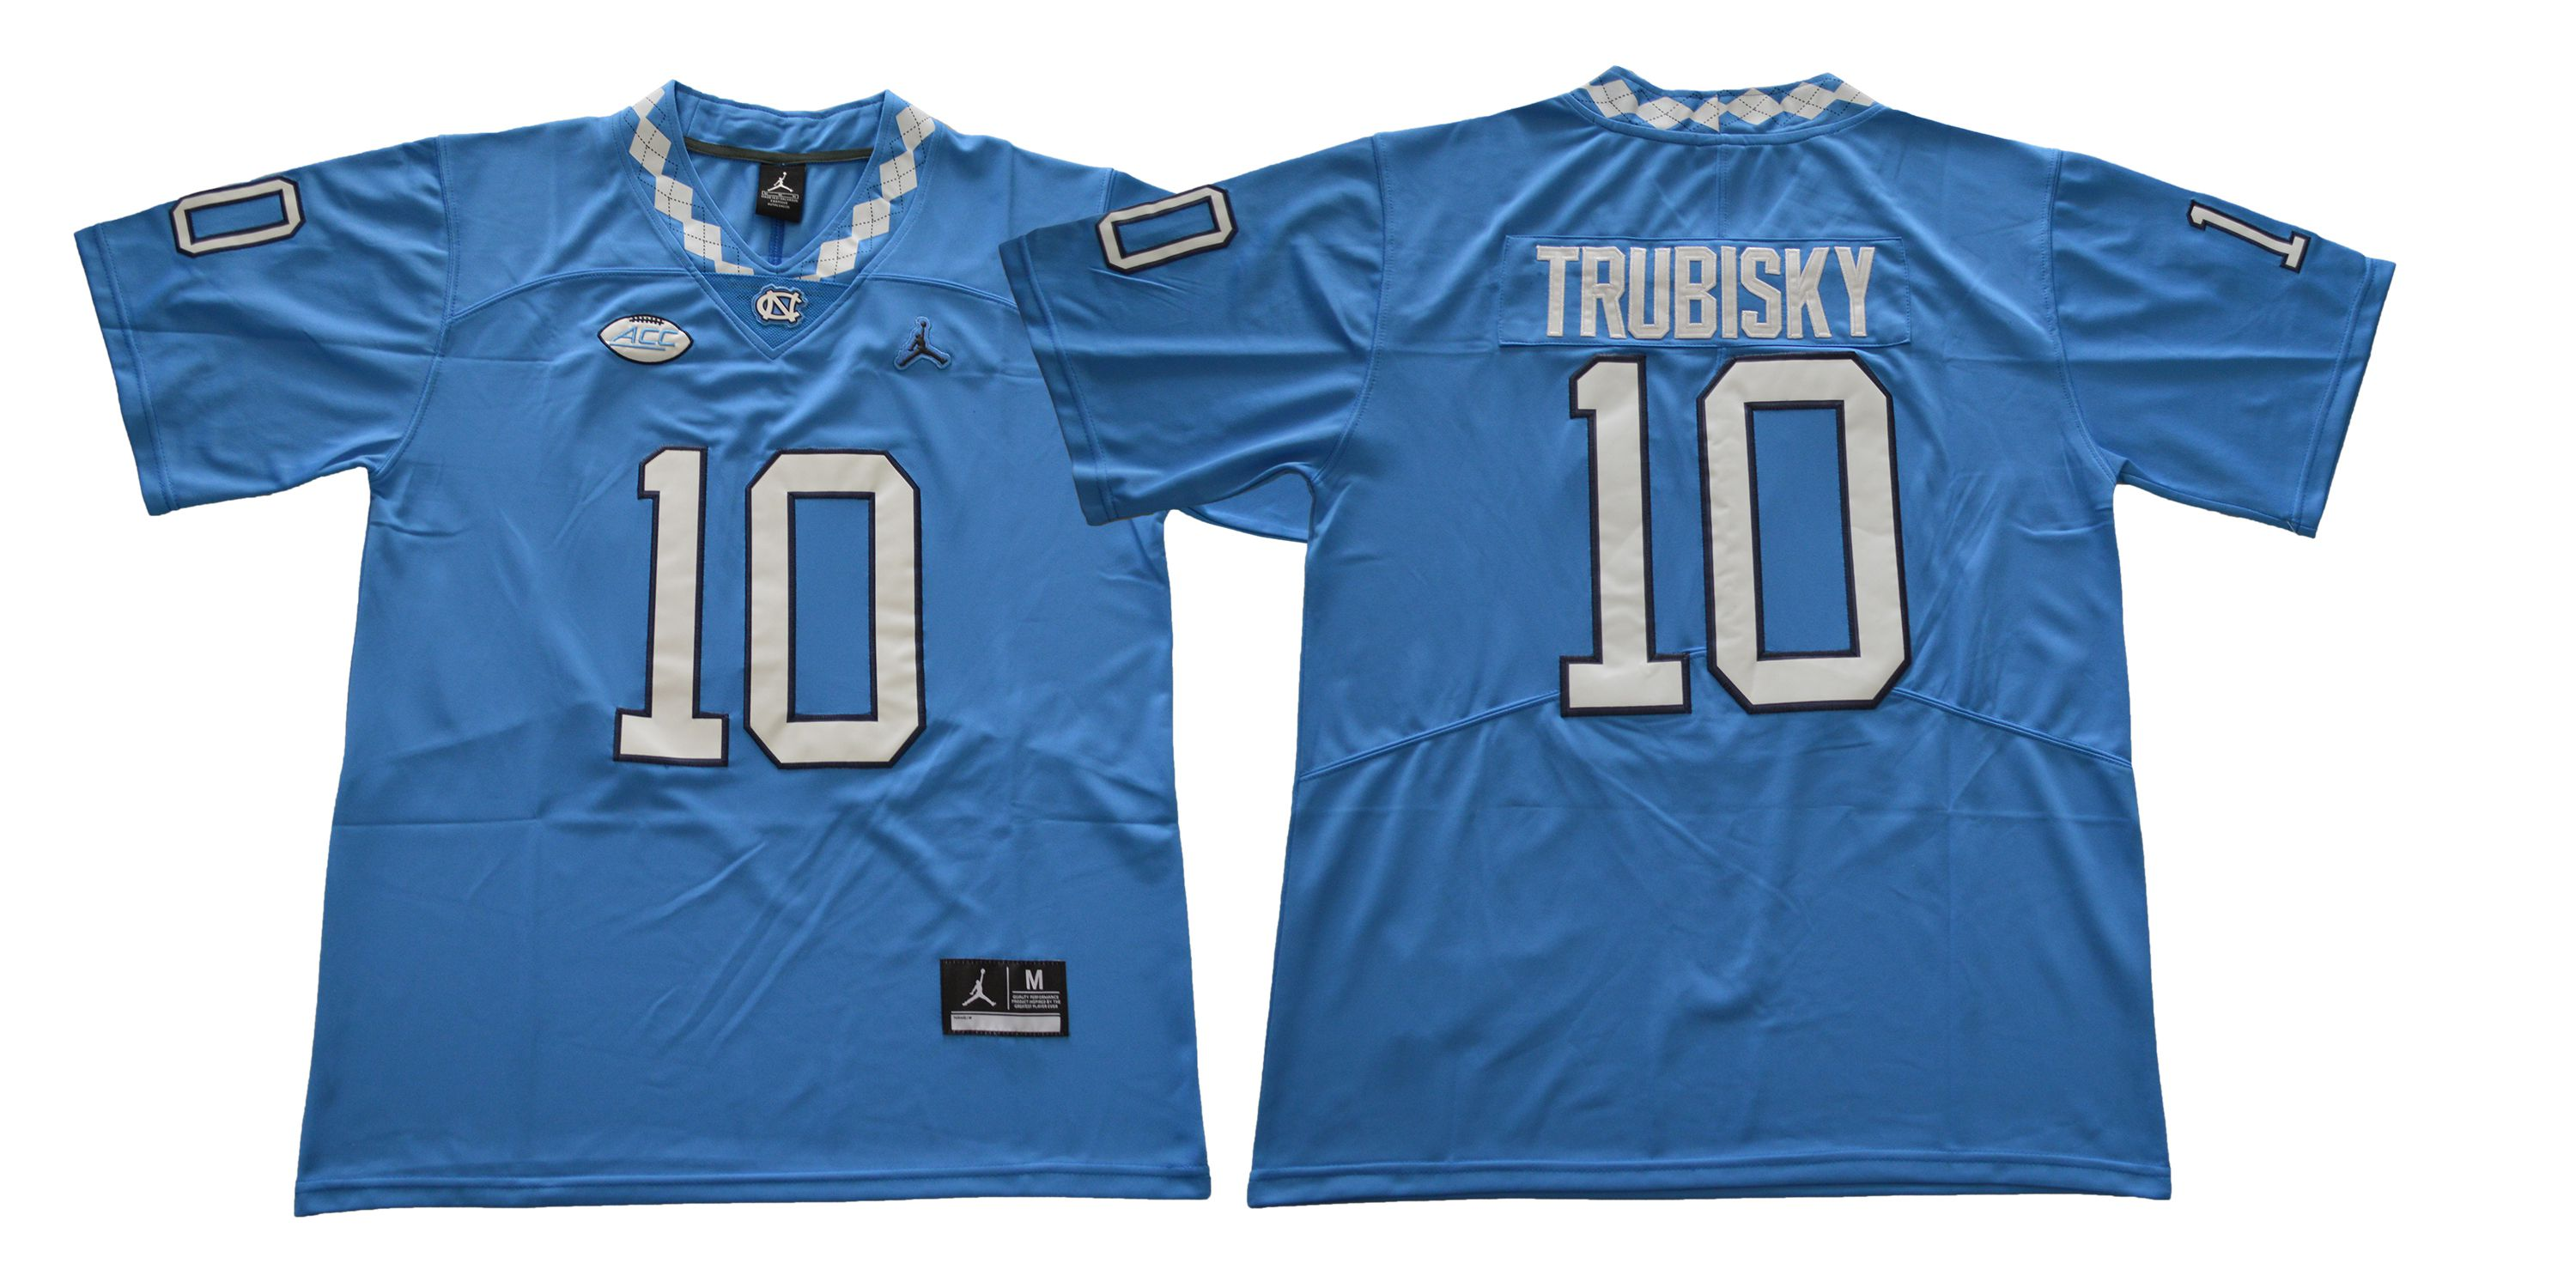 Men North Carolina Tar Heels 10 Trubisky Blue NCAA Jerseys